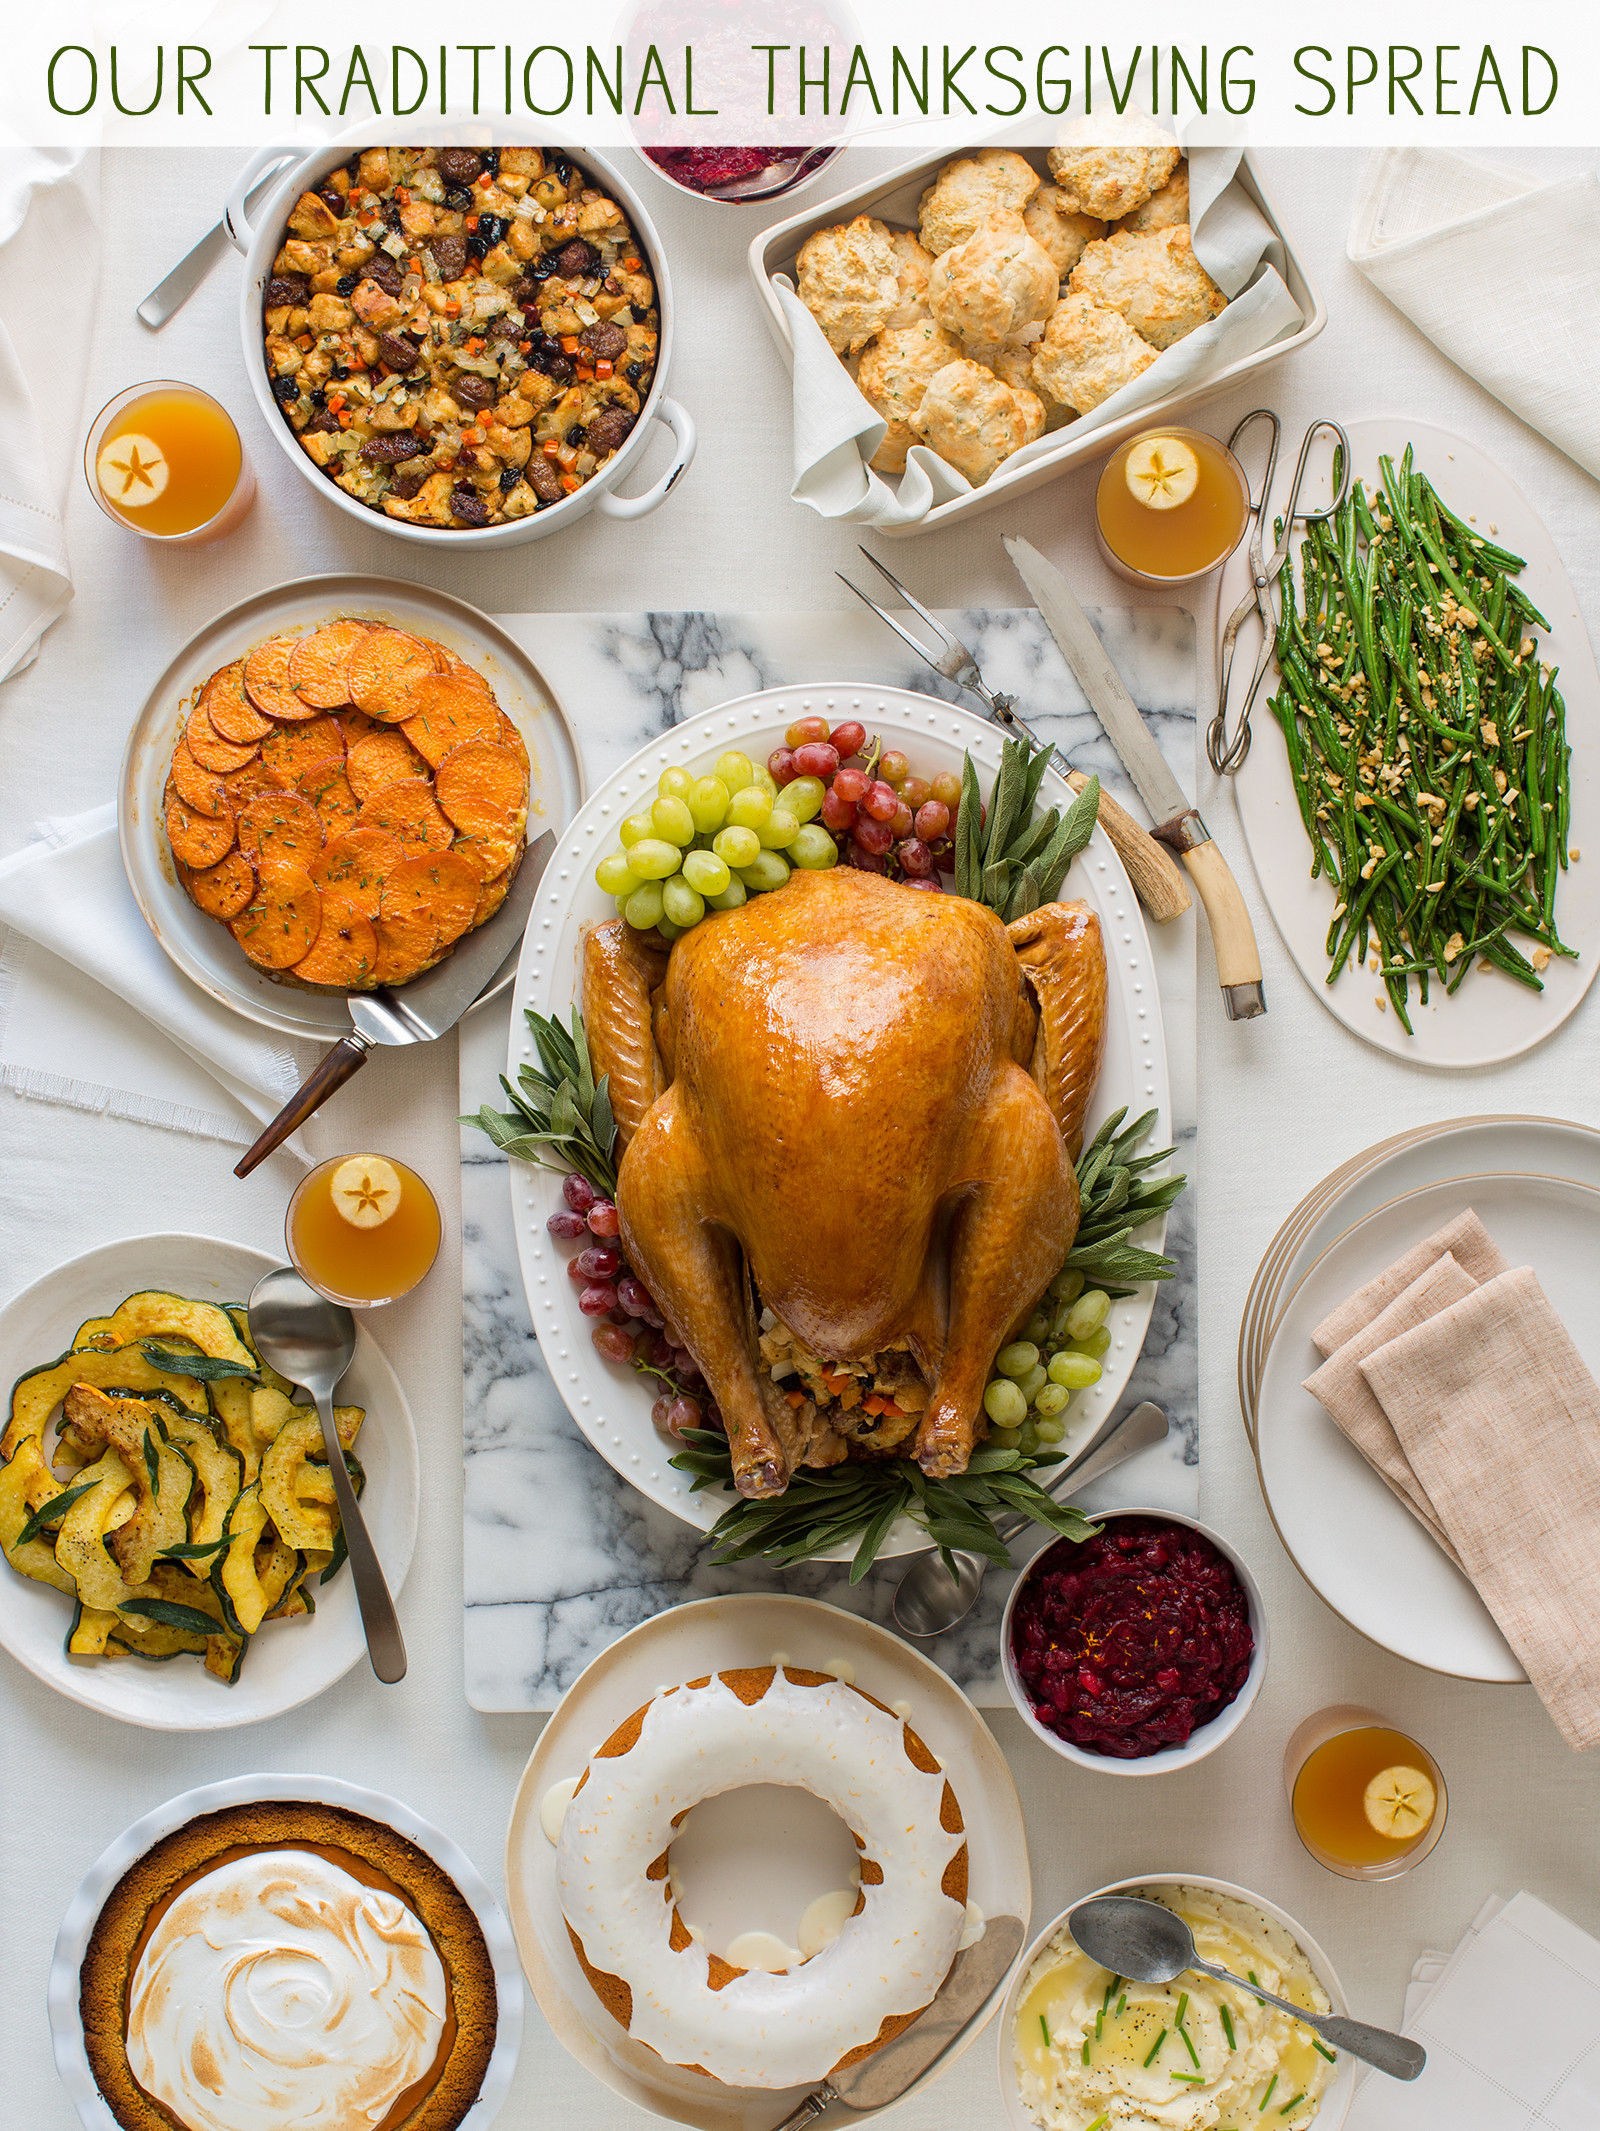 Turkey Recipe Thanksgiving  Our Traditional Thanksgiving Spread